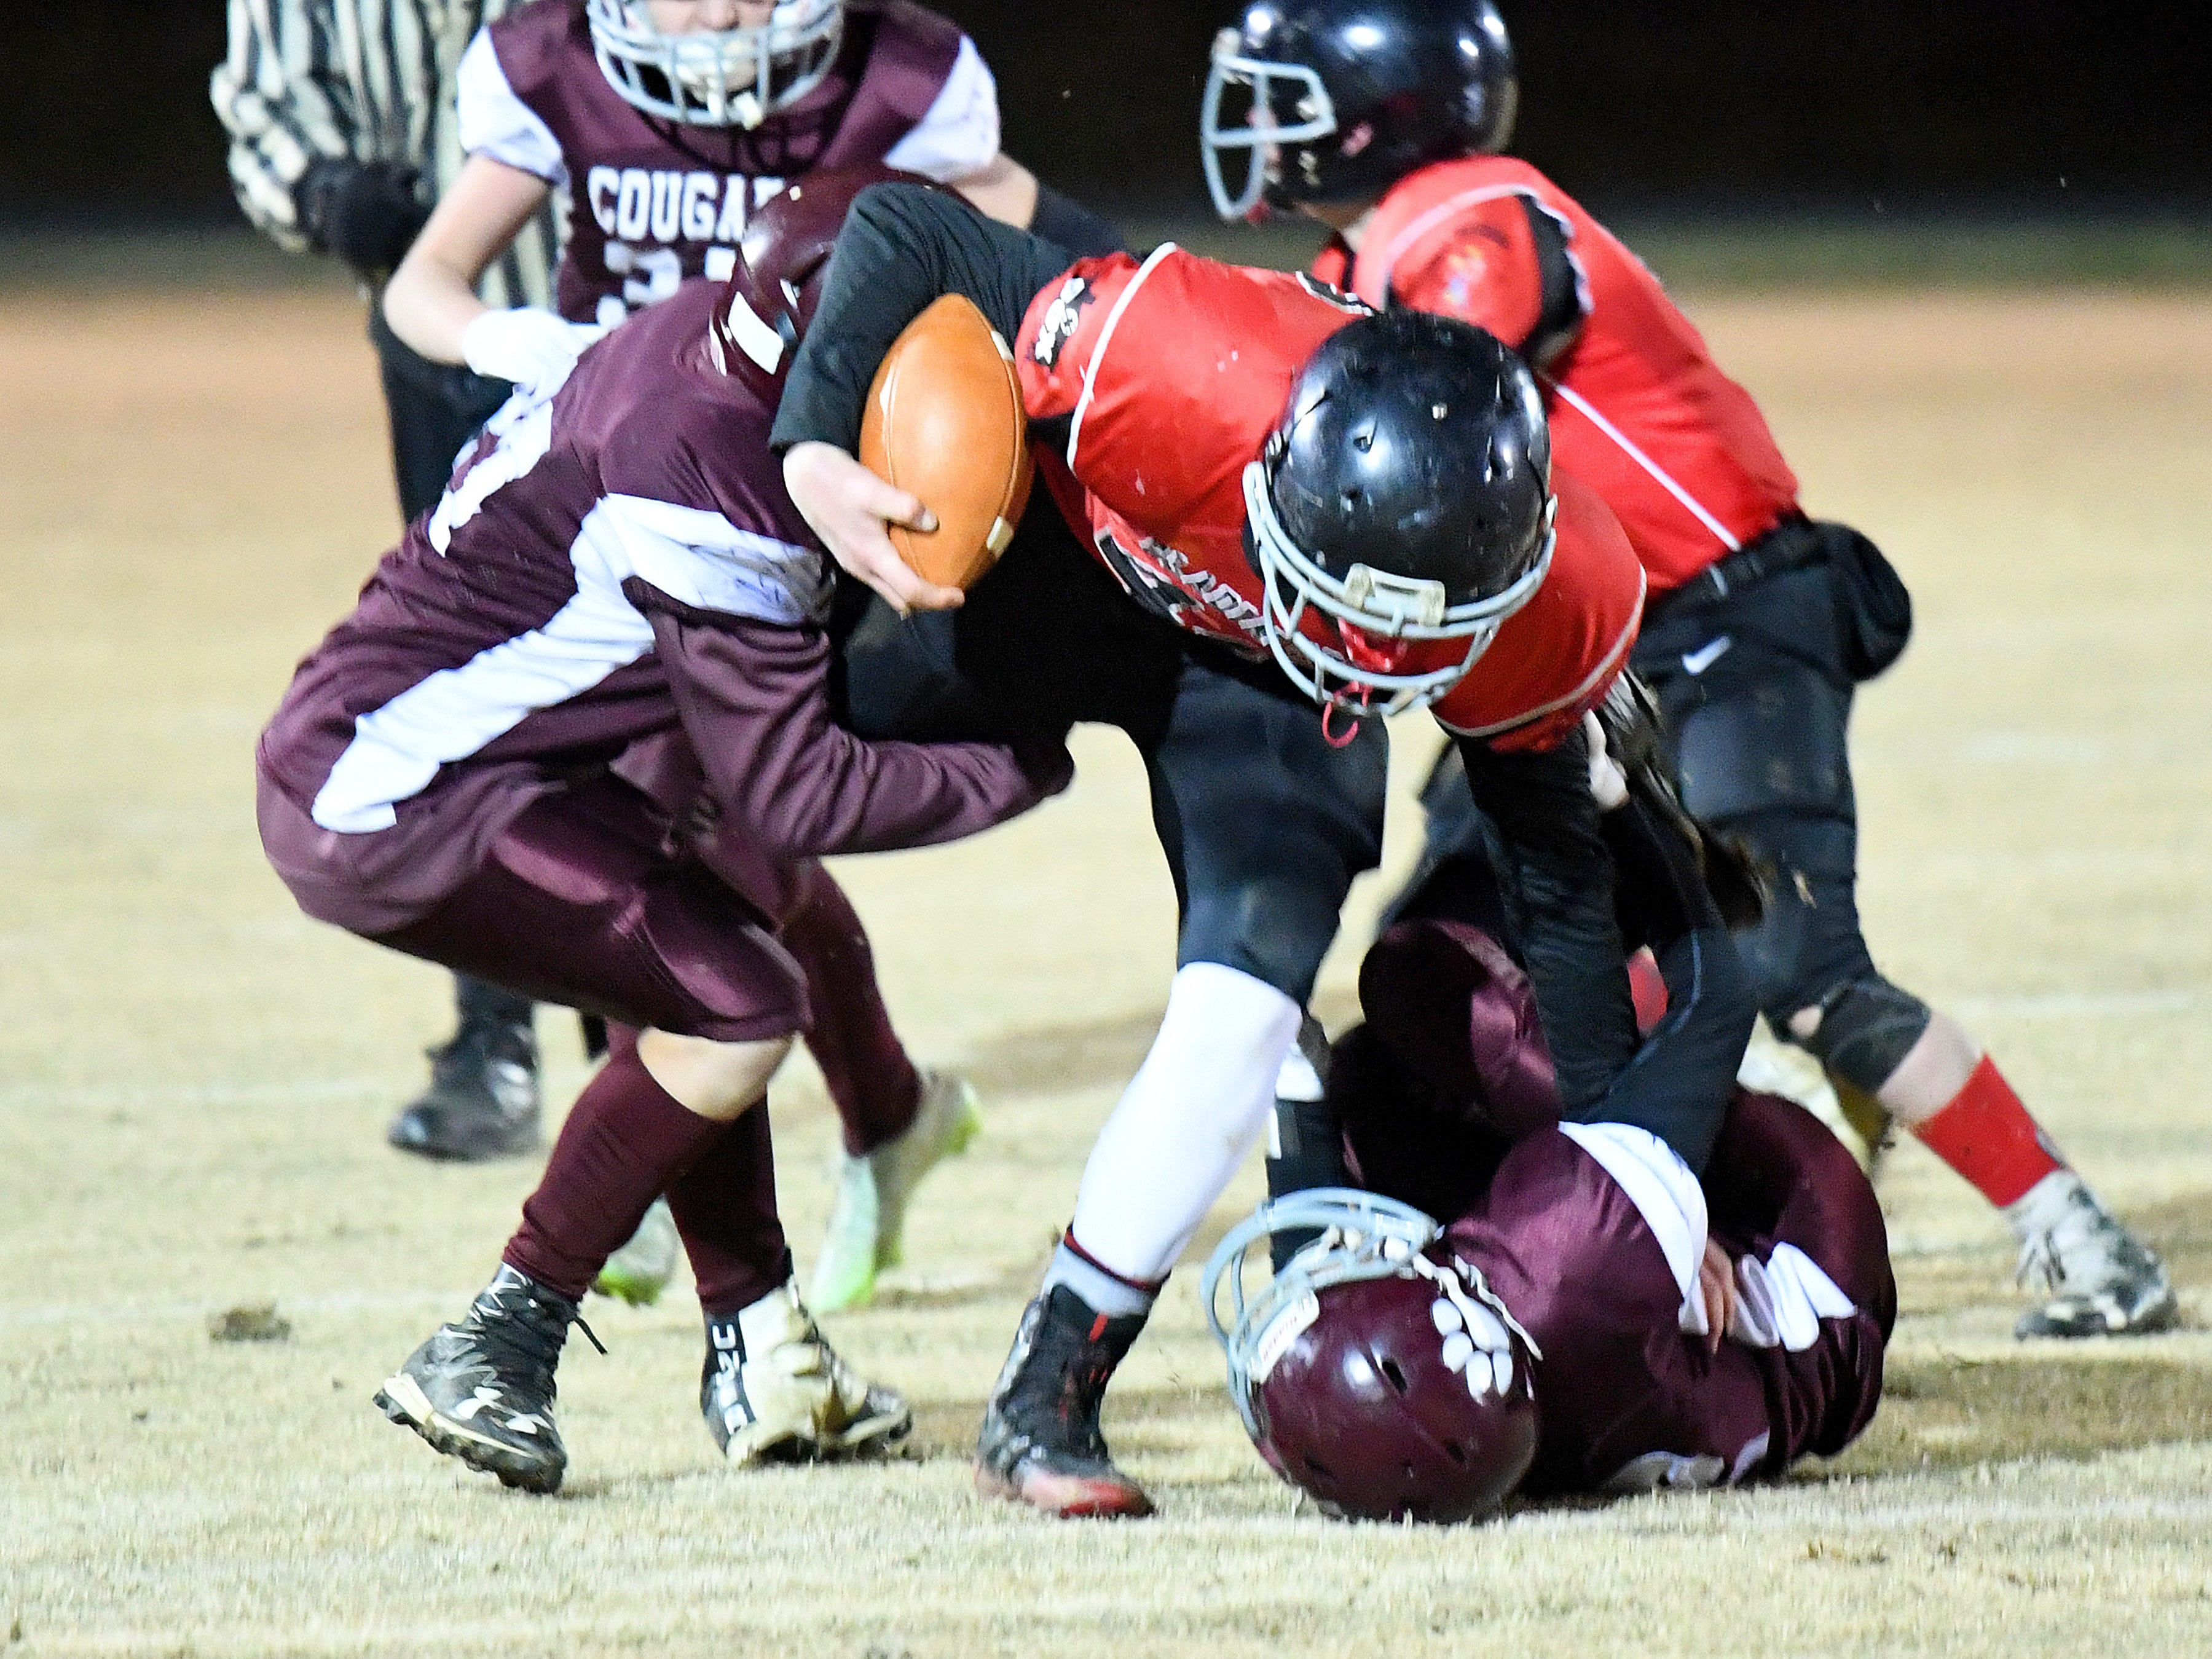 Riverheads' Cayden Cook Cash fights to break a tackle as Stuarts Draft defenders work to make the tackle during the Augusta County Quarterback Club Seniors Super Bowl in Fishersville on Sunday, Nov. 11, 2018.  RIverheads defeats Stuarts Draft, 38-6.